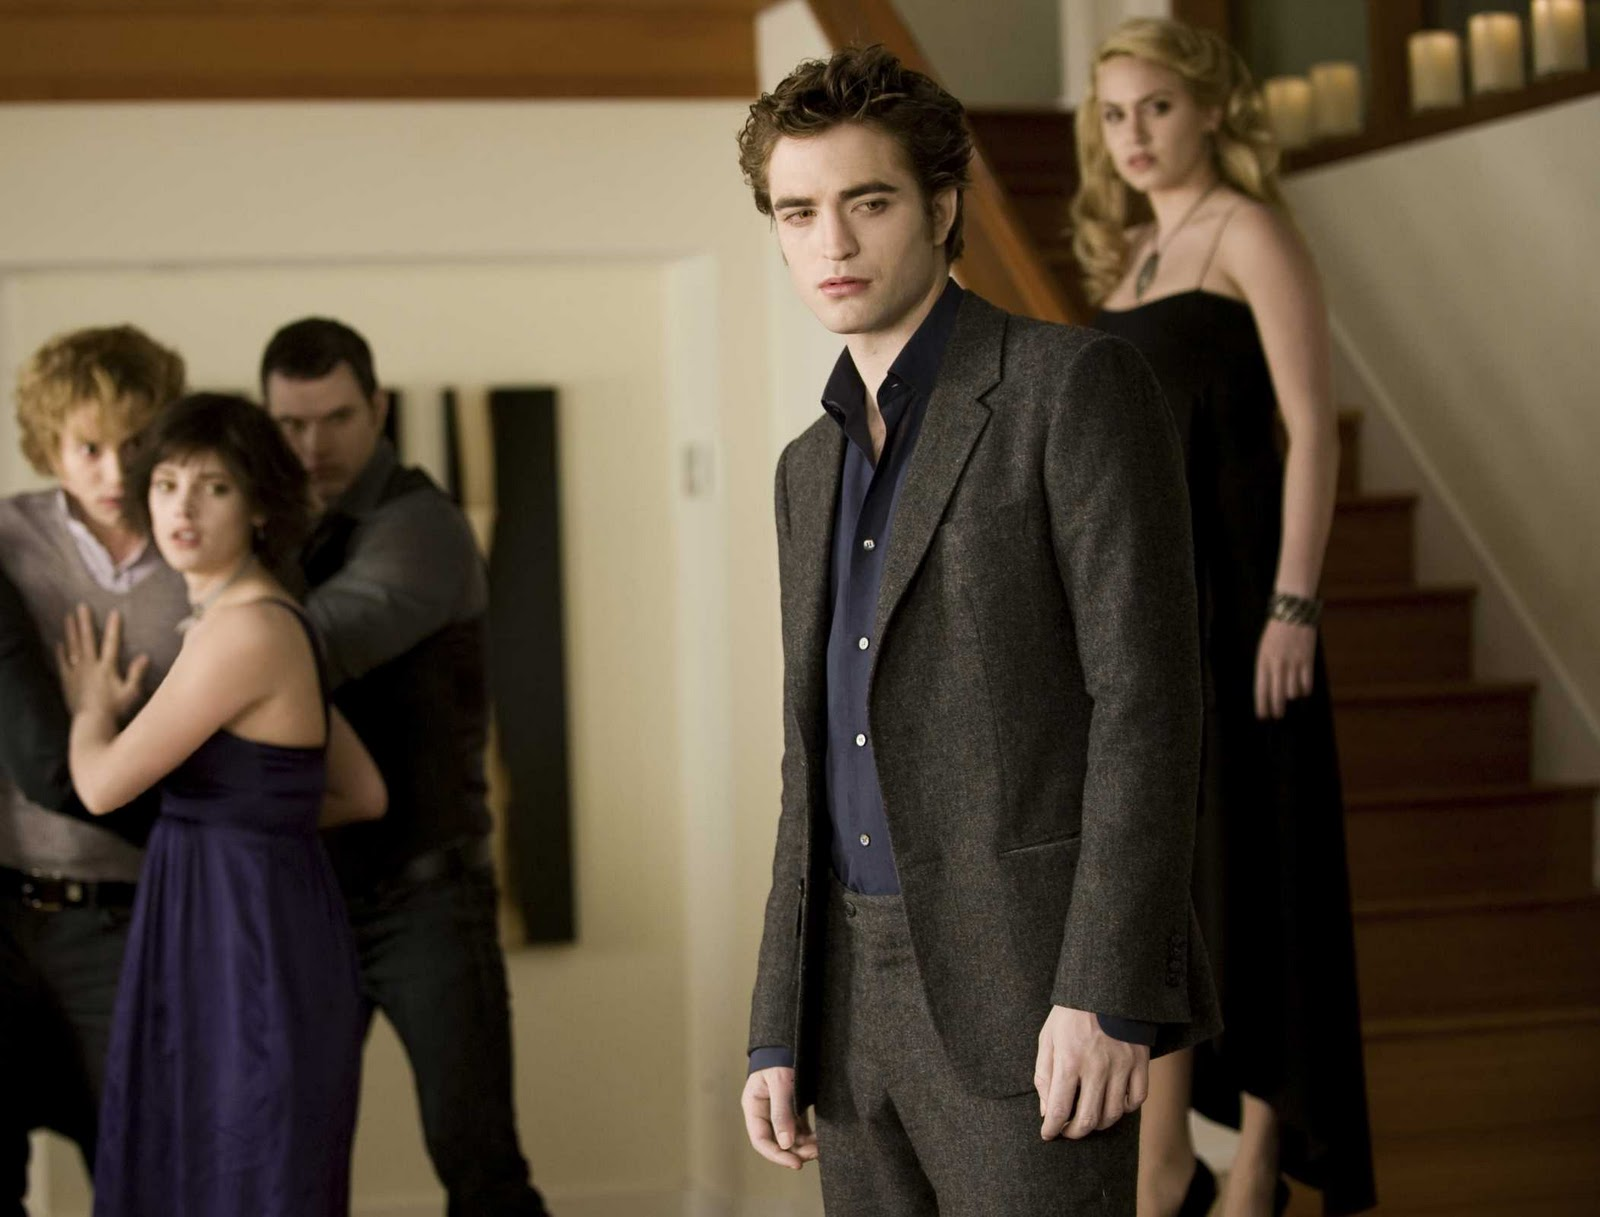 http://1.bp.blogspot.com/-dzYMMRTnxdM/TsSbihRDplI/AAAAAAAAAgs/NMbpkztVzyc/s1600/2009_the_twilight_saga_new_moon_010.jpg